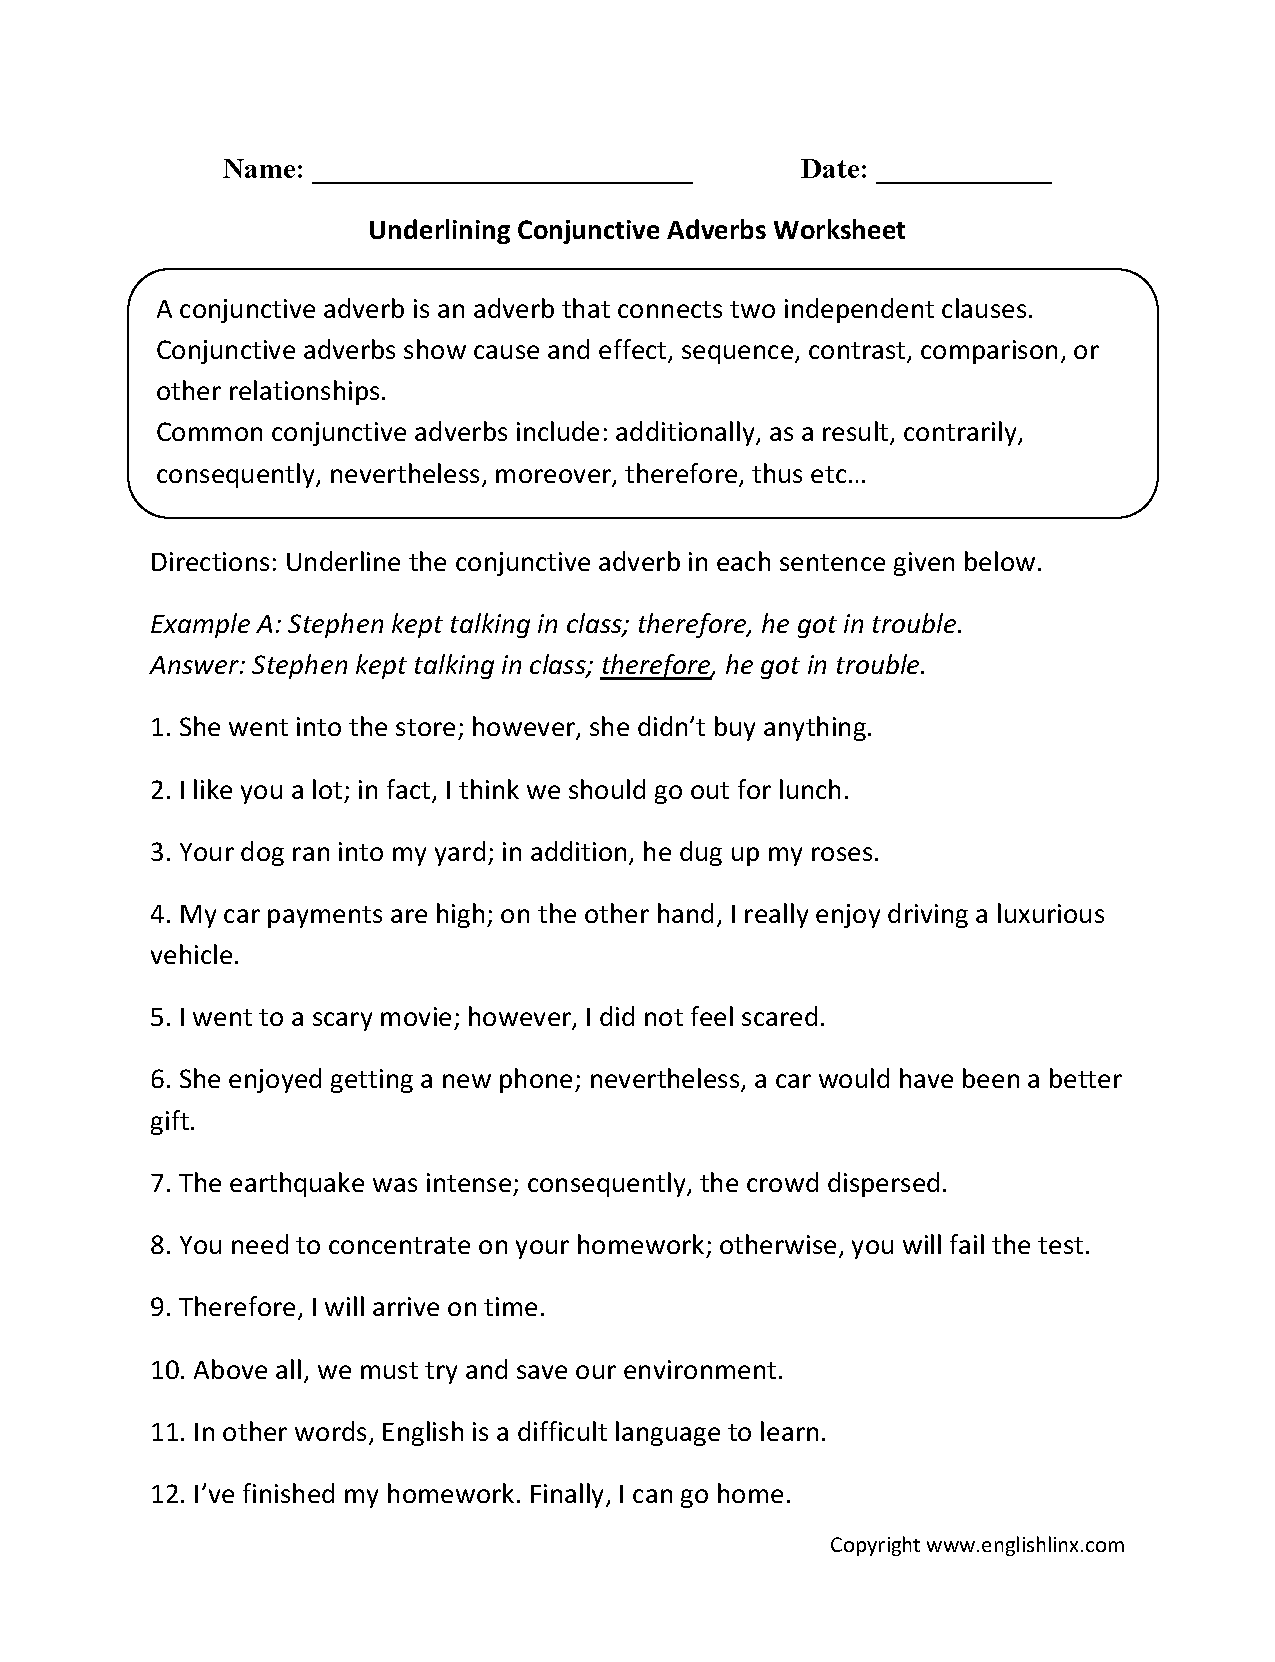 Weirdmailus  Marvellous Englishlinxcom  Conjunctions Worksheets With Remarkable Worksheet With Extraordinary Tracing Worksheets For Preschoolers Also Spanish Prepositions Worksheet In Addition Latitude And Longitude Practice Worksheet And Dividing And Multiplying Fractions Worksheet As Well As Layers Of The Earth Worksheets Additionally Math Quiz Worksheet From Englishlinxcom With Weirdmailus  Remarkable Englishlinxcom  Conjunctions Worksheets With Extraordinary Worksheet And Marvellous Tracing Worksheets For Preschoolers Also Spanish Prepositions Worksheet In Addition Latitude And Longitude Practice Worksheet From Englishlinxcom